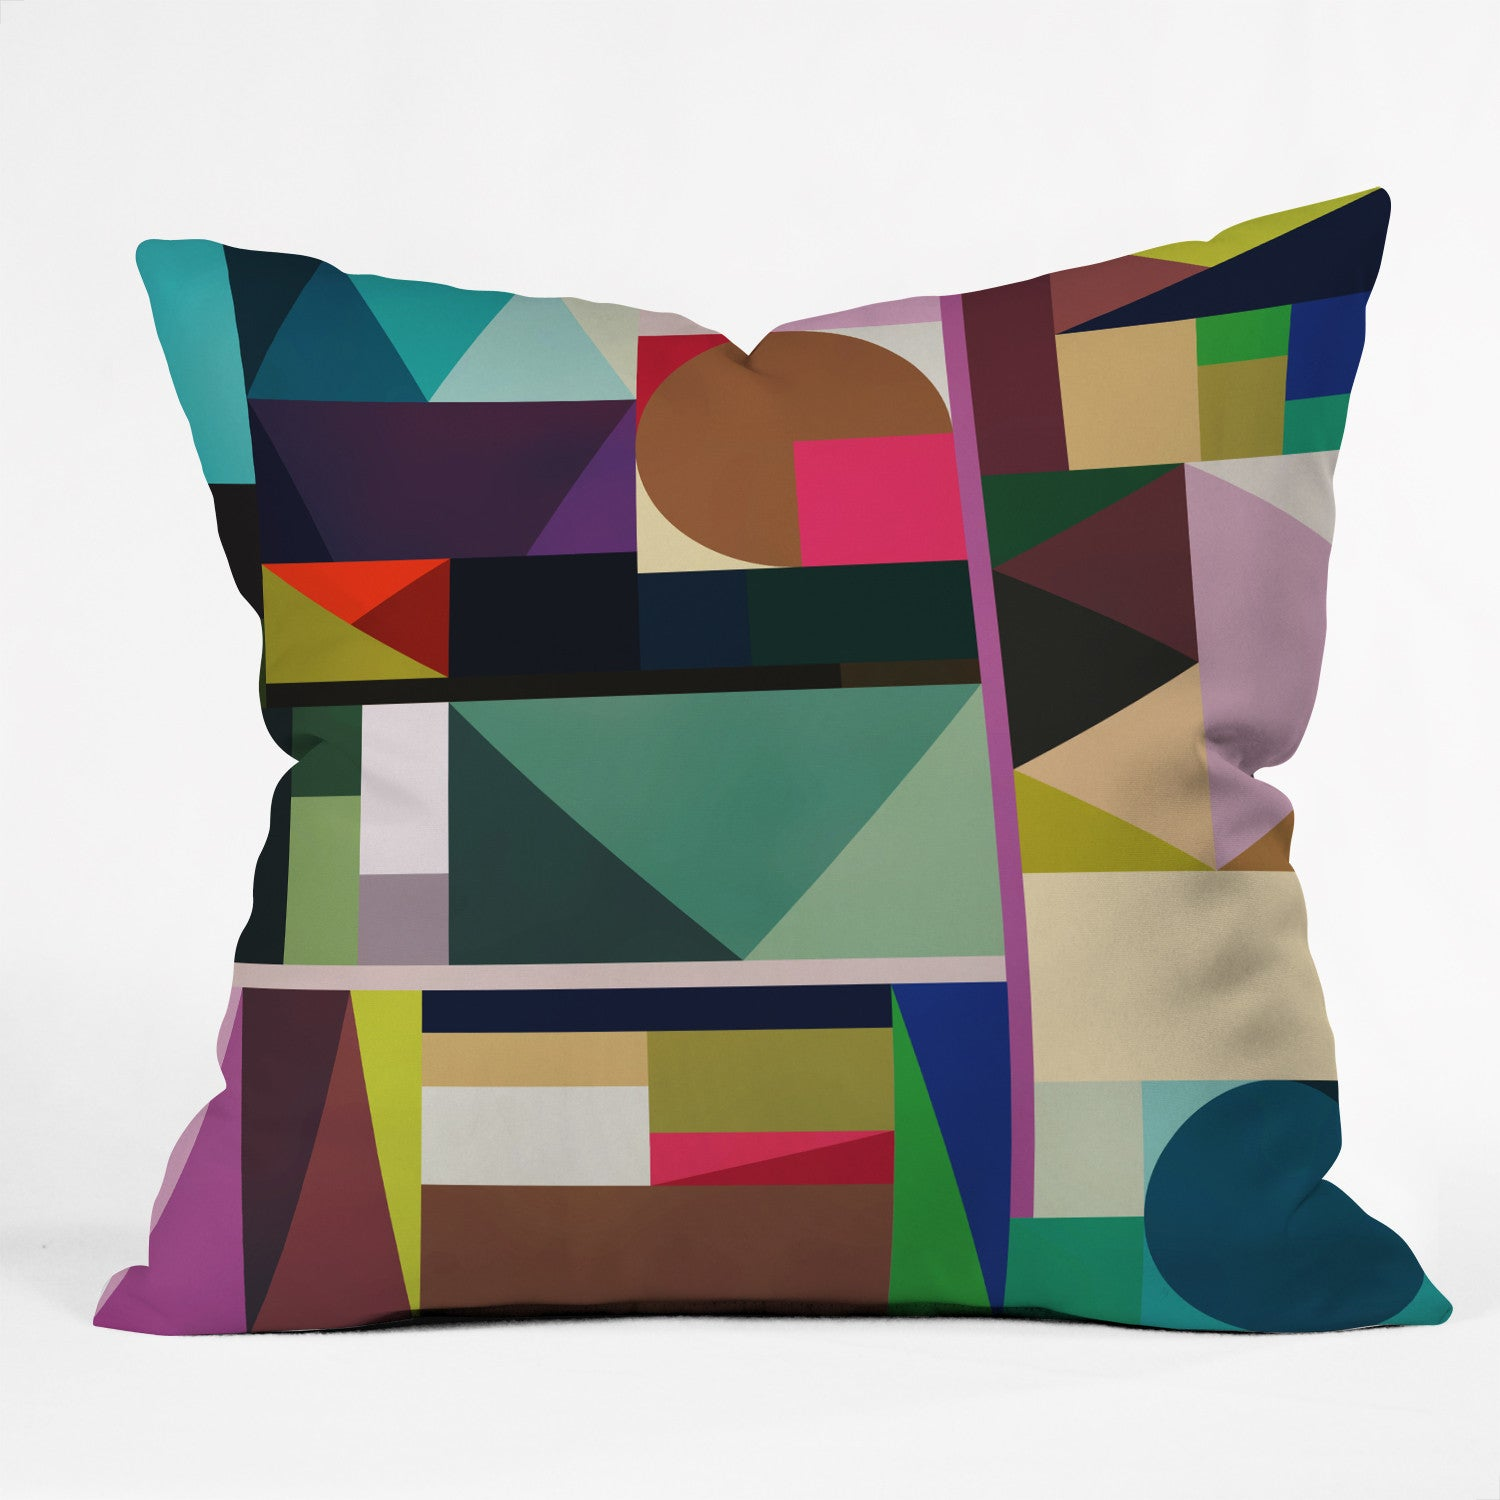 Fimbis Kaku Outdoor Throw Pillow